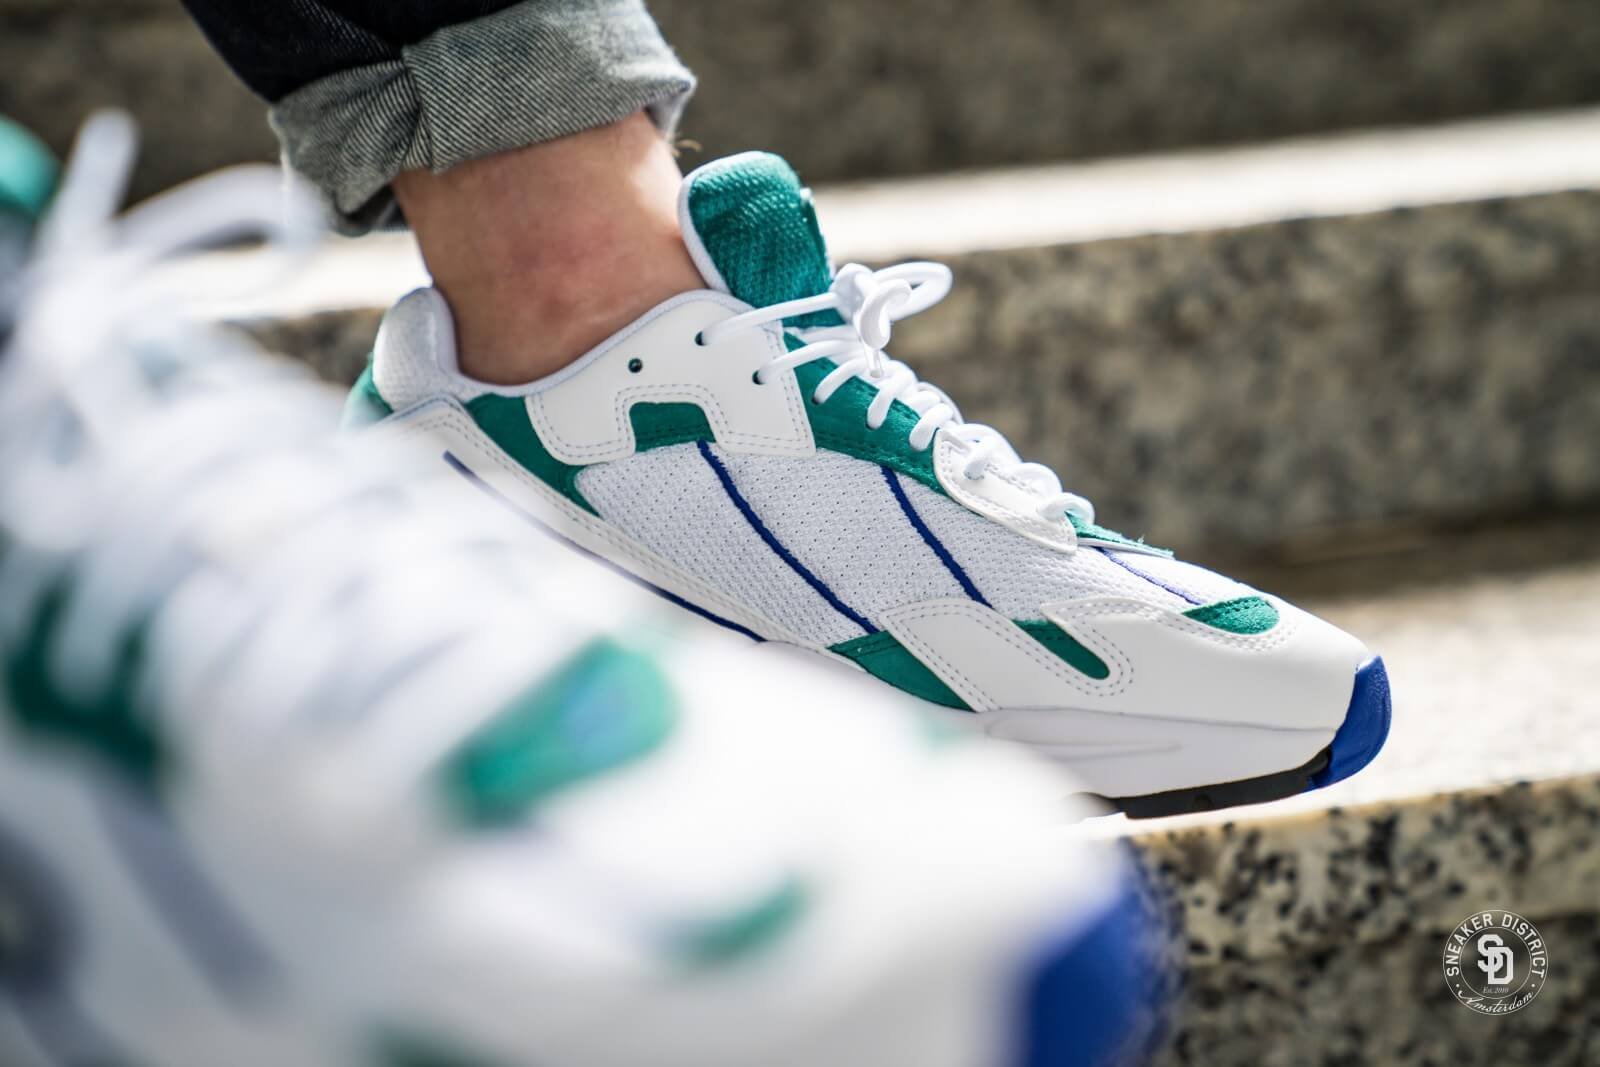 Puma Cell Ultra OG Pack Puma White/Teal Green - 370765-01